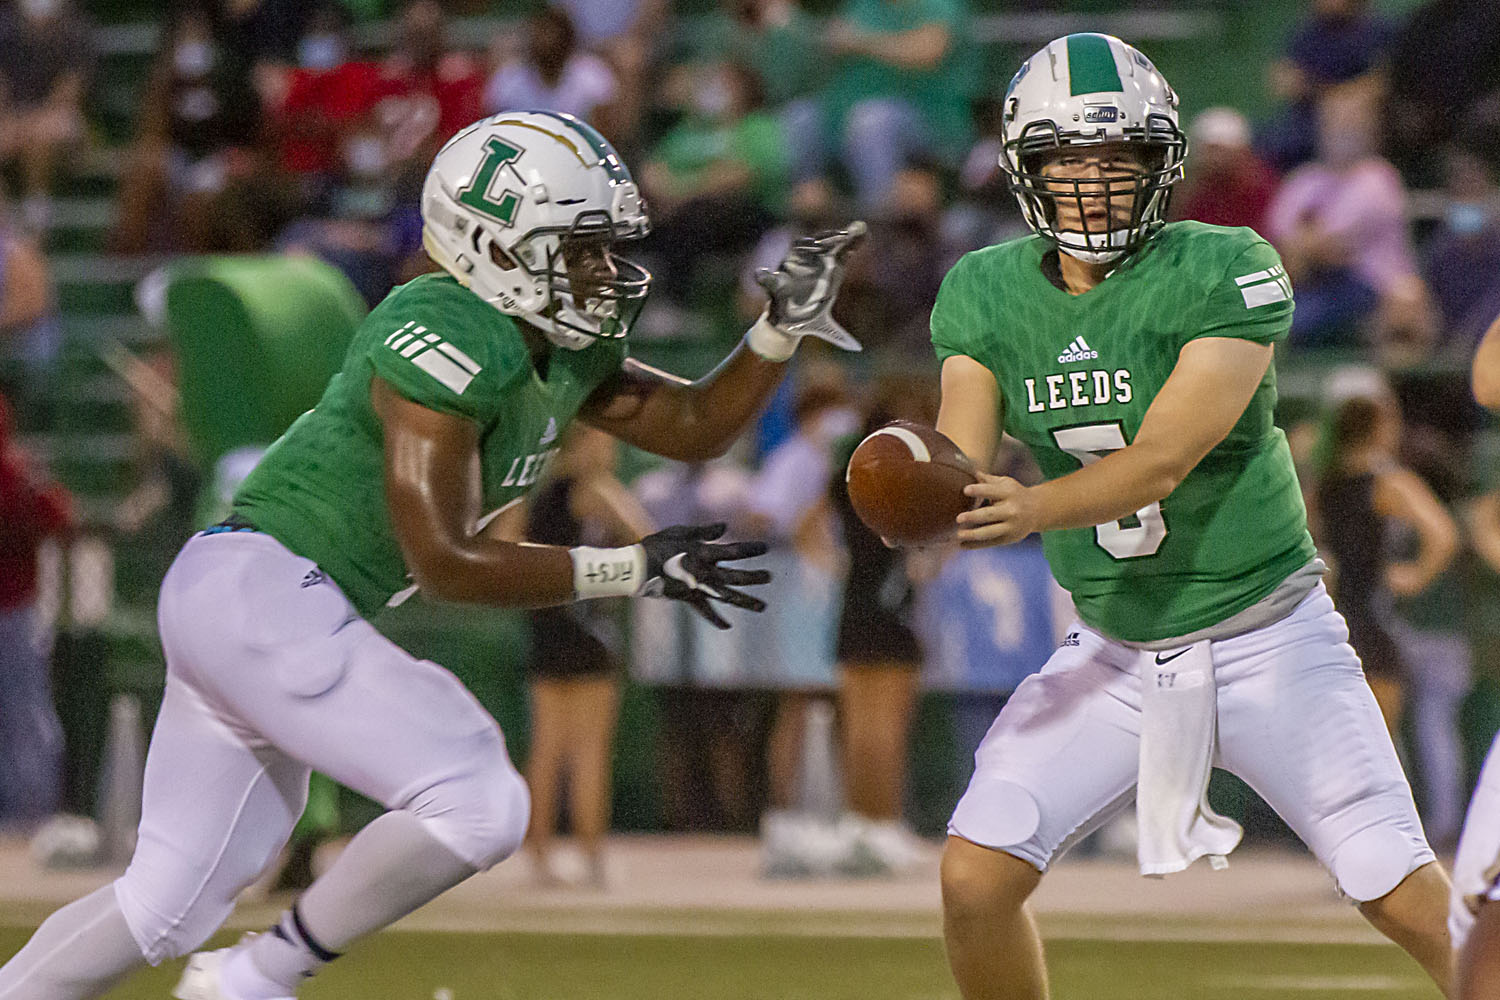 Week 2 primer: Local teams stare down region play this Friday